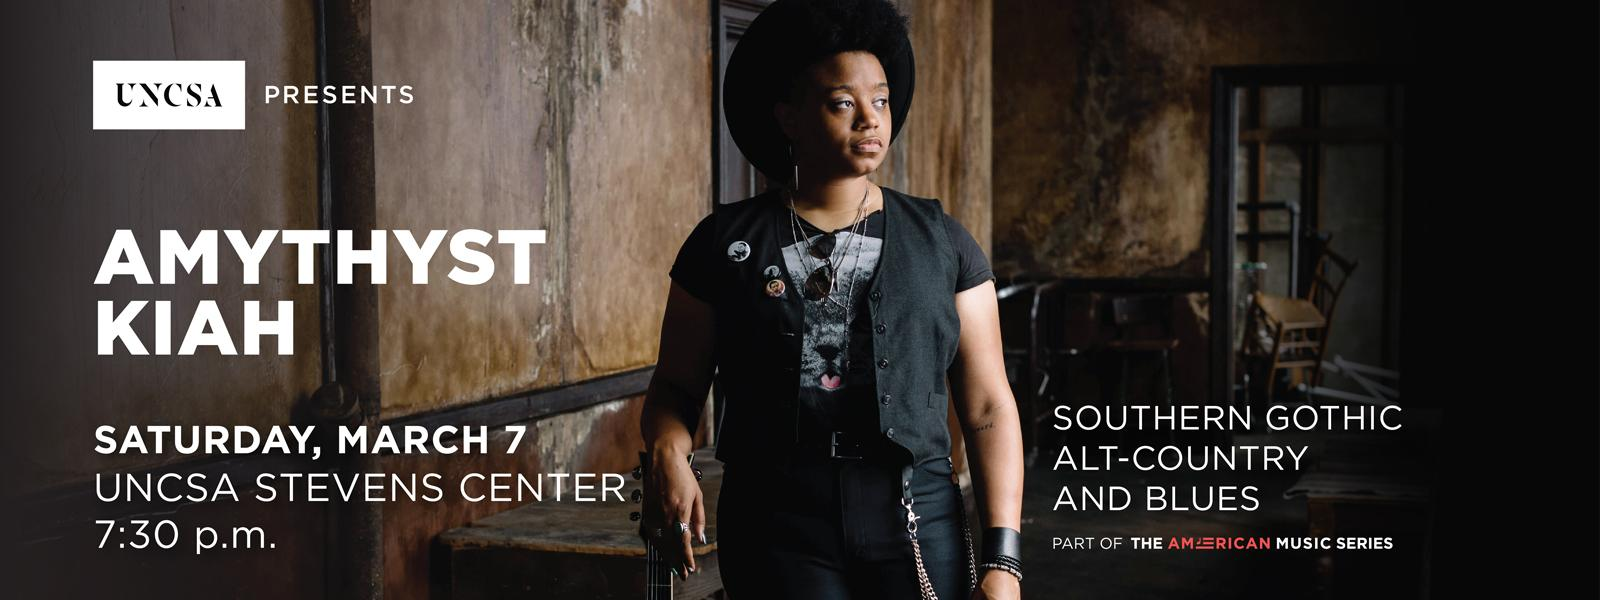 Southern gothic alt-country blues singer Amythyst Kiah performs at the Stevens Center>>BUY TICKETS